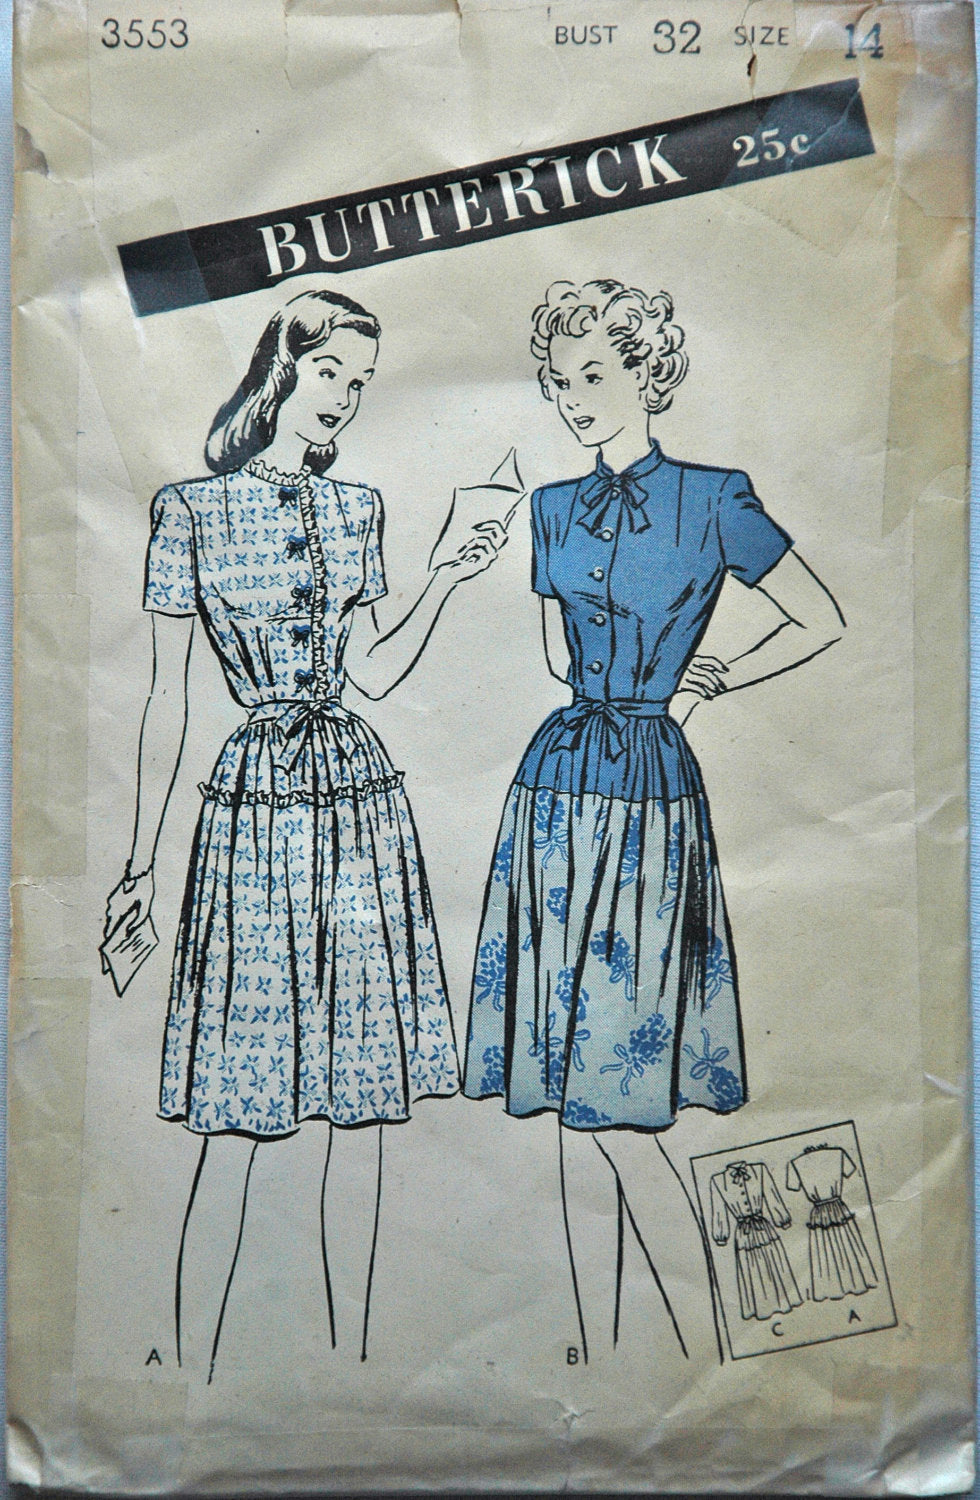 1940's Butterick One-Piece Drop Waist Dress Pattern - Bust 32